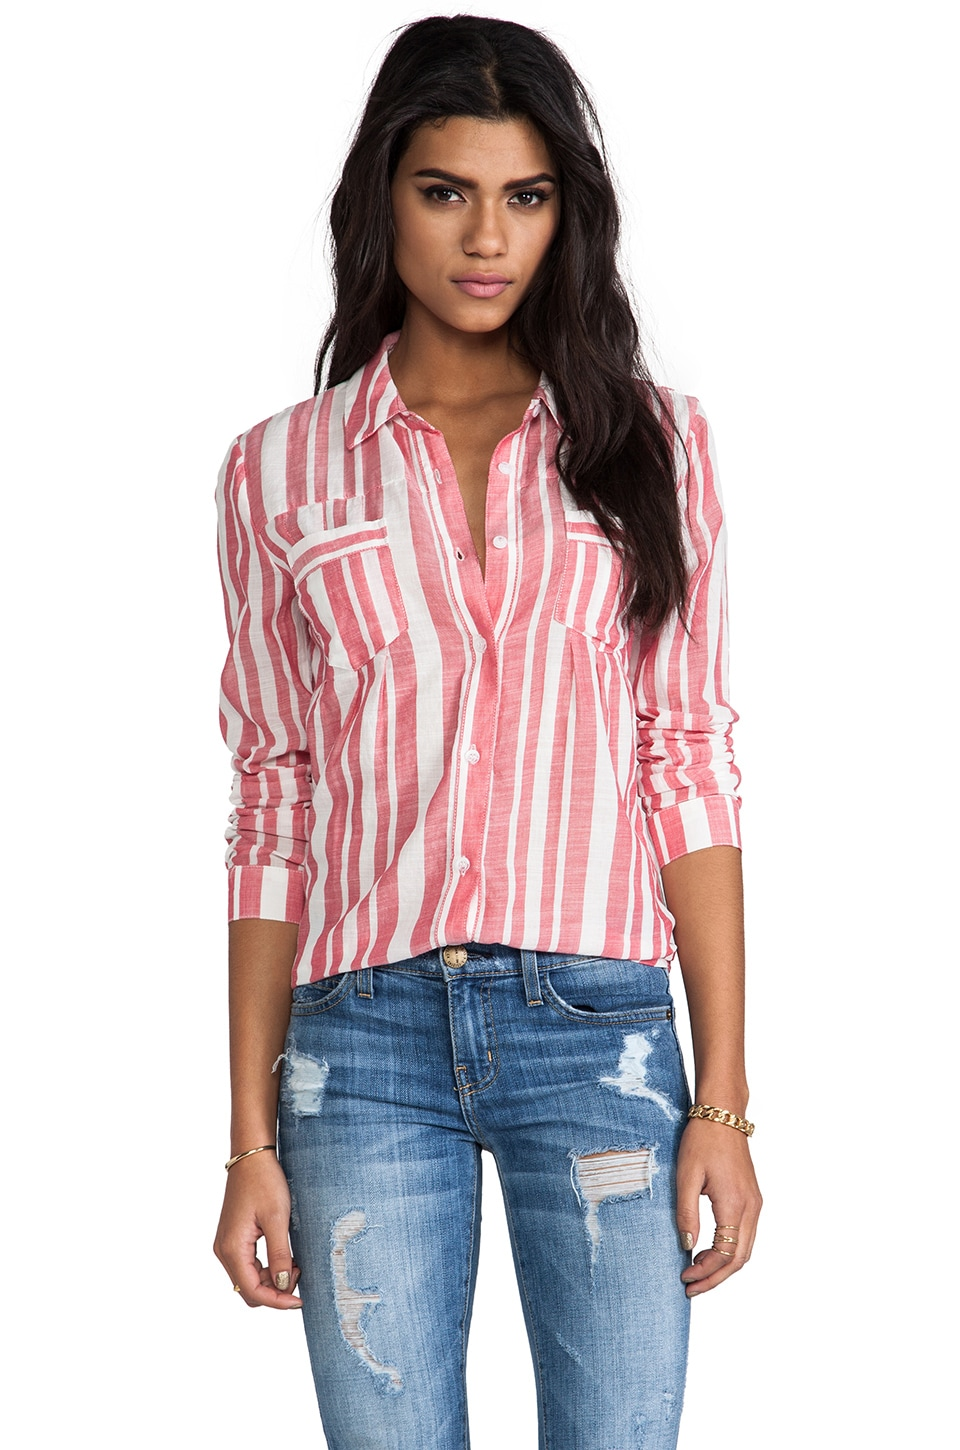 Splendid Oasis Stripe Shirting in Roja